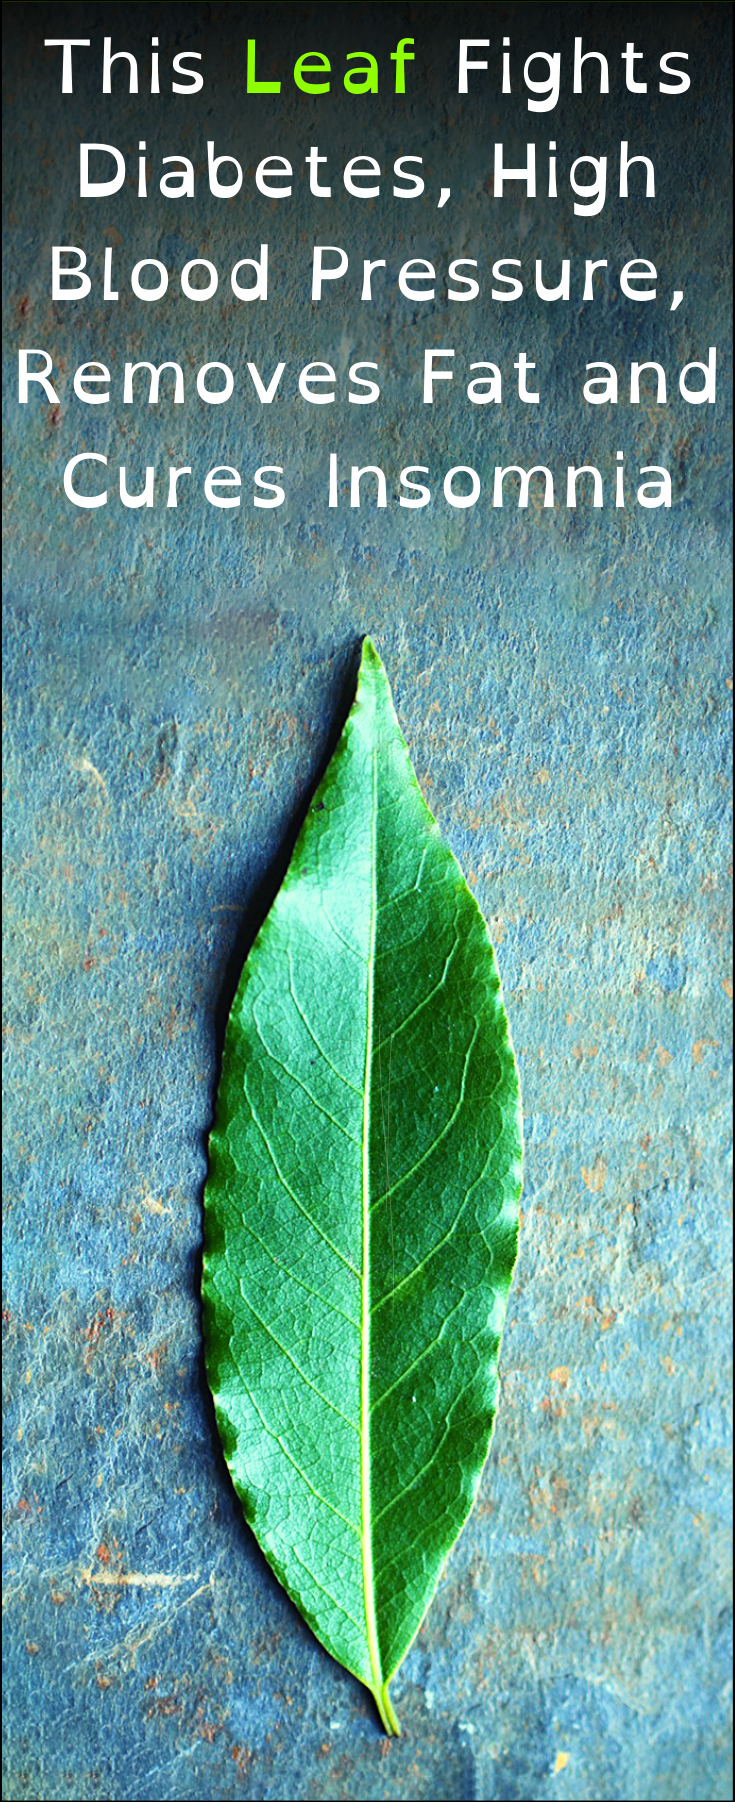 This Leaf Fights Diabetes, High Blood Pr - Health Fitness